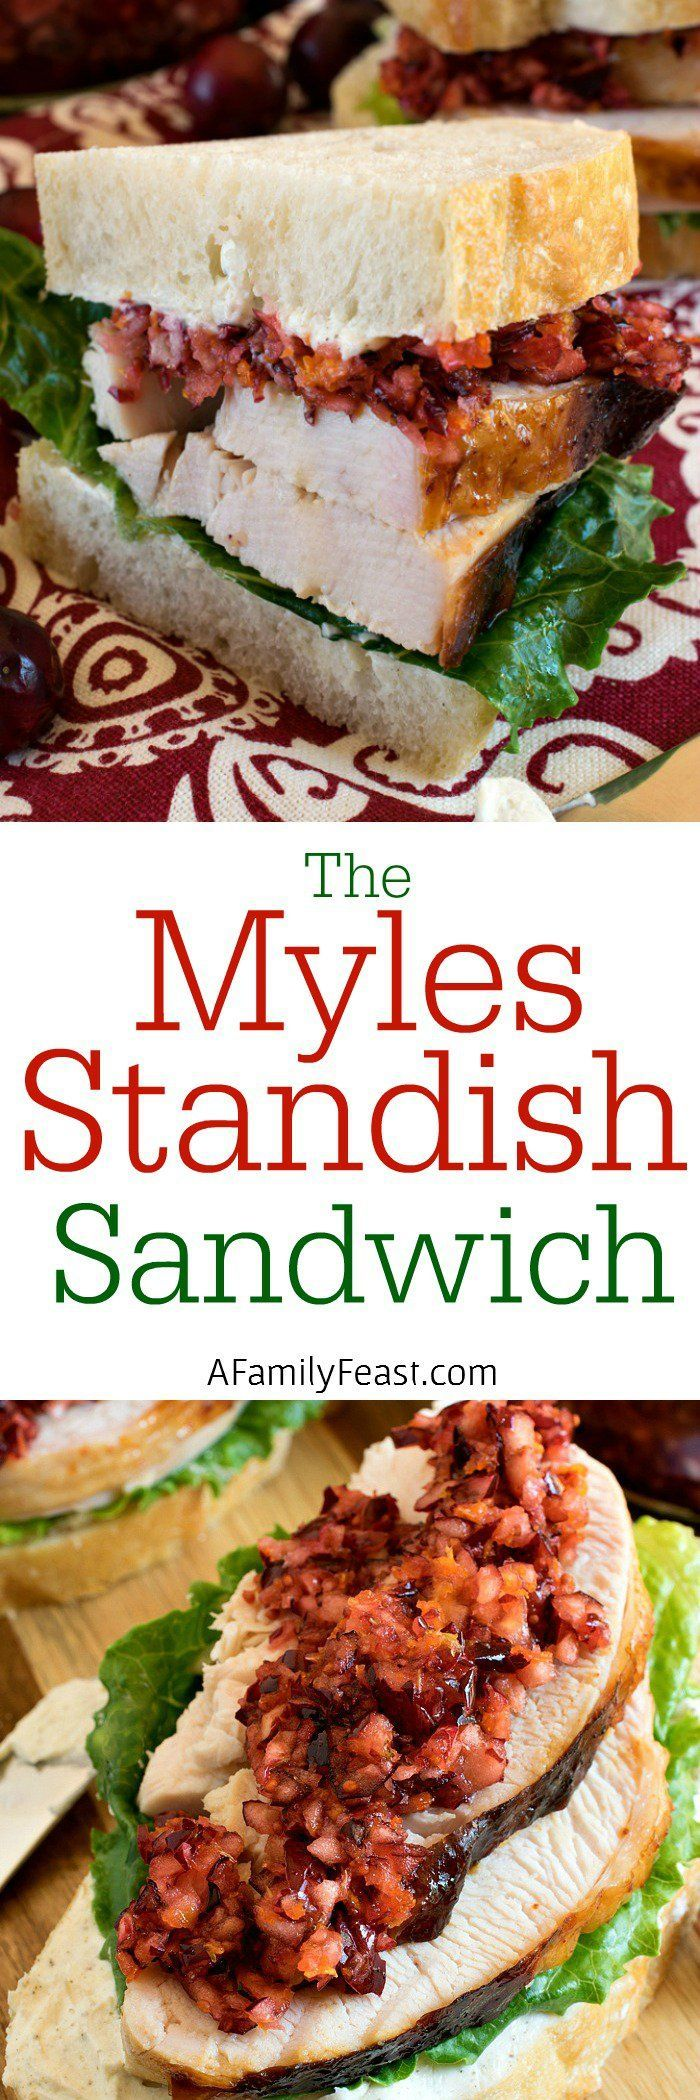 Myles Standish Sandwich - A delicious sandwich made with turkey slices, cream cheese on white crusty bread, and a delicious cranberry orange relish on top. So good!  | Thanksgiving turkey leftovers